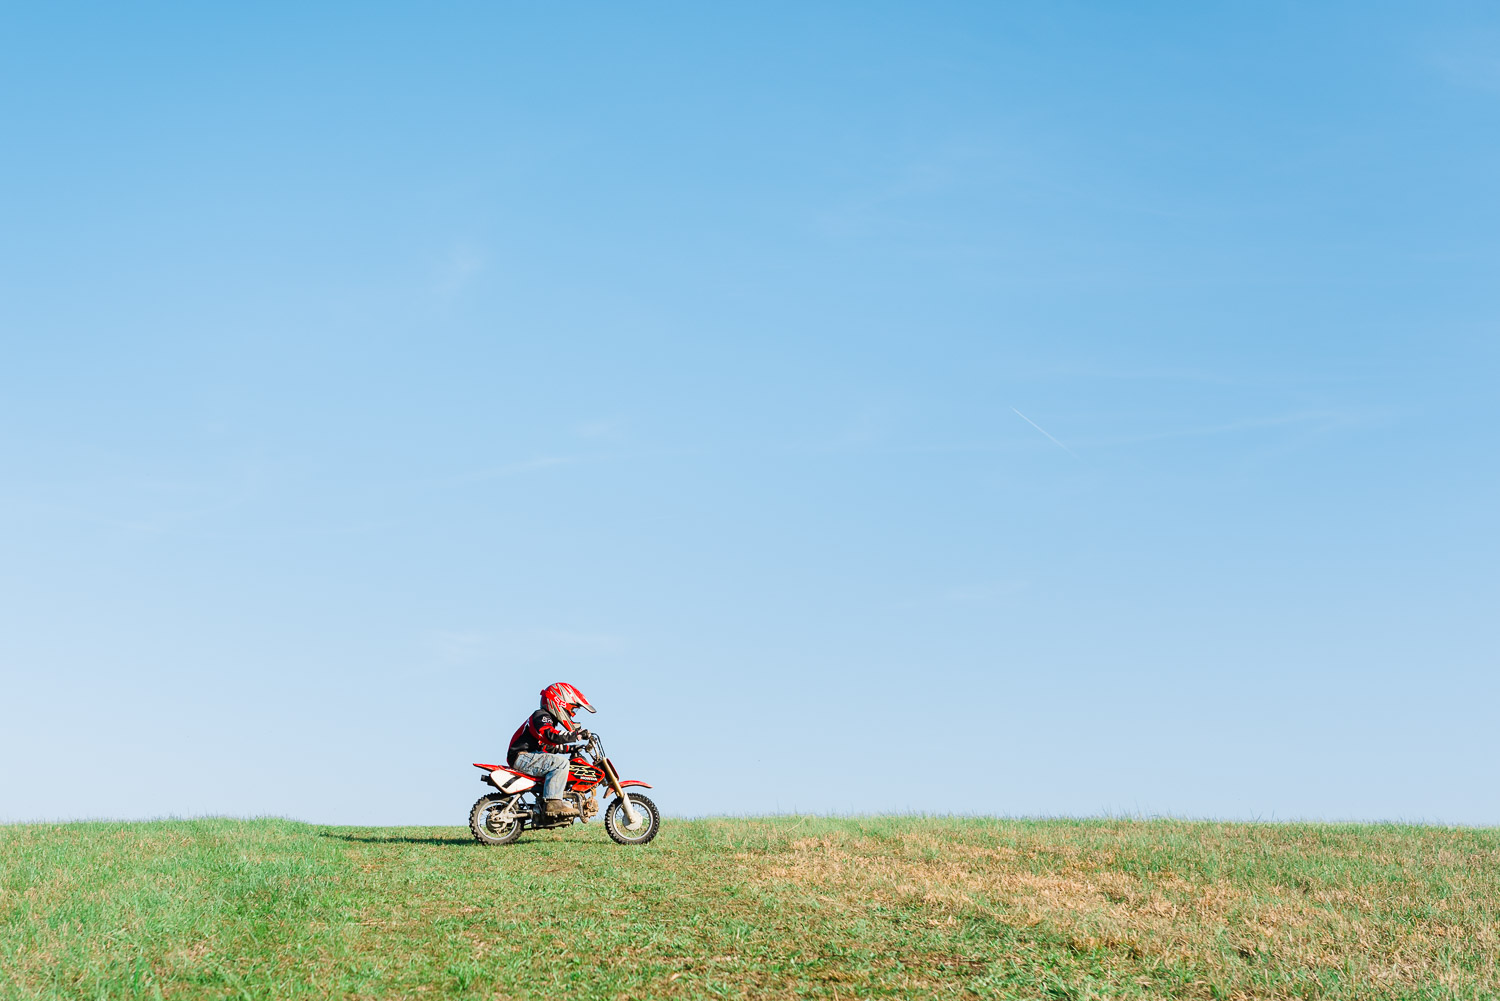 tiny honda rider riding across green grassy hill in Tennessee